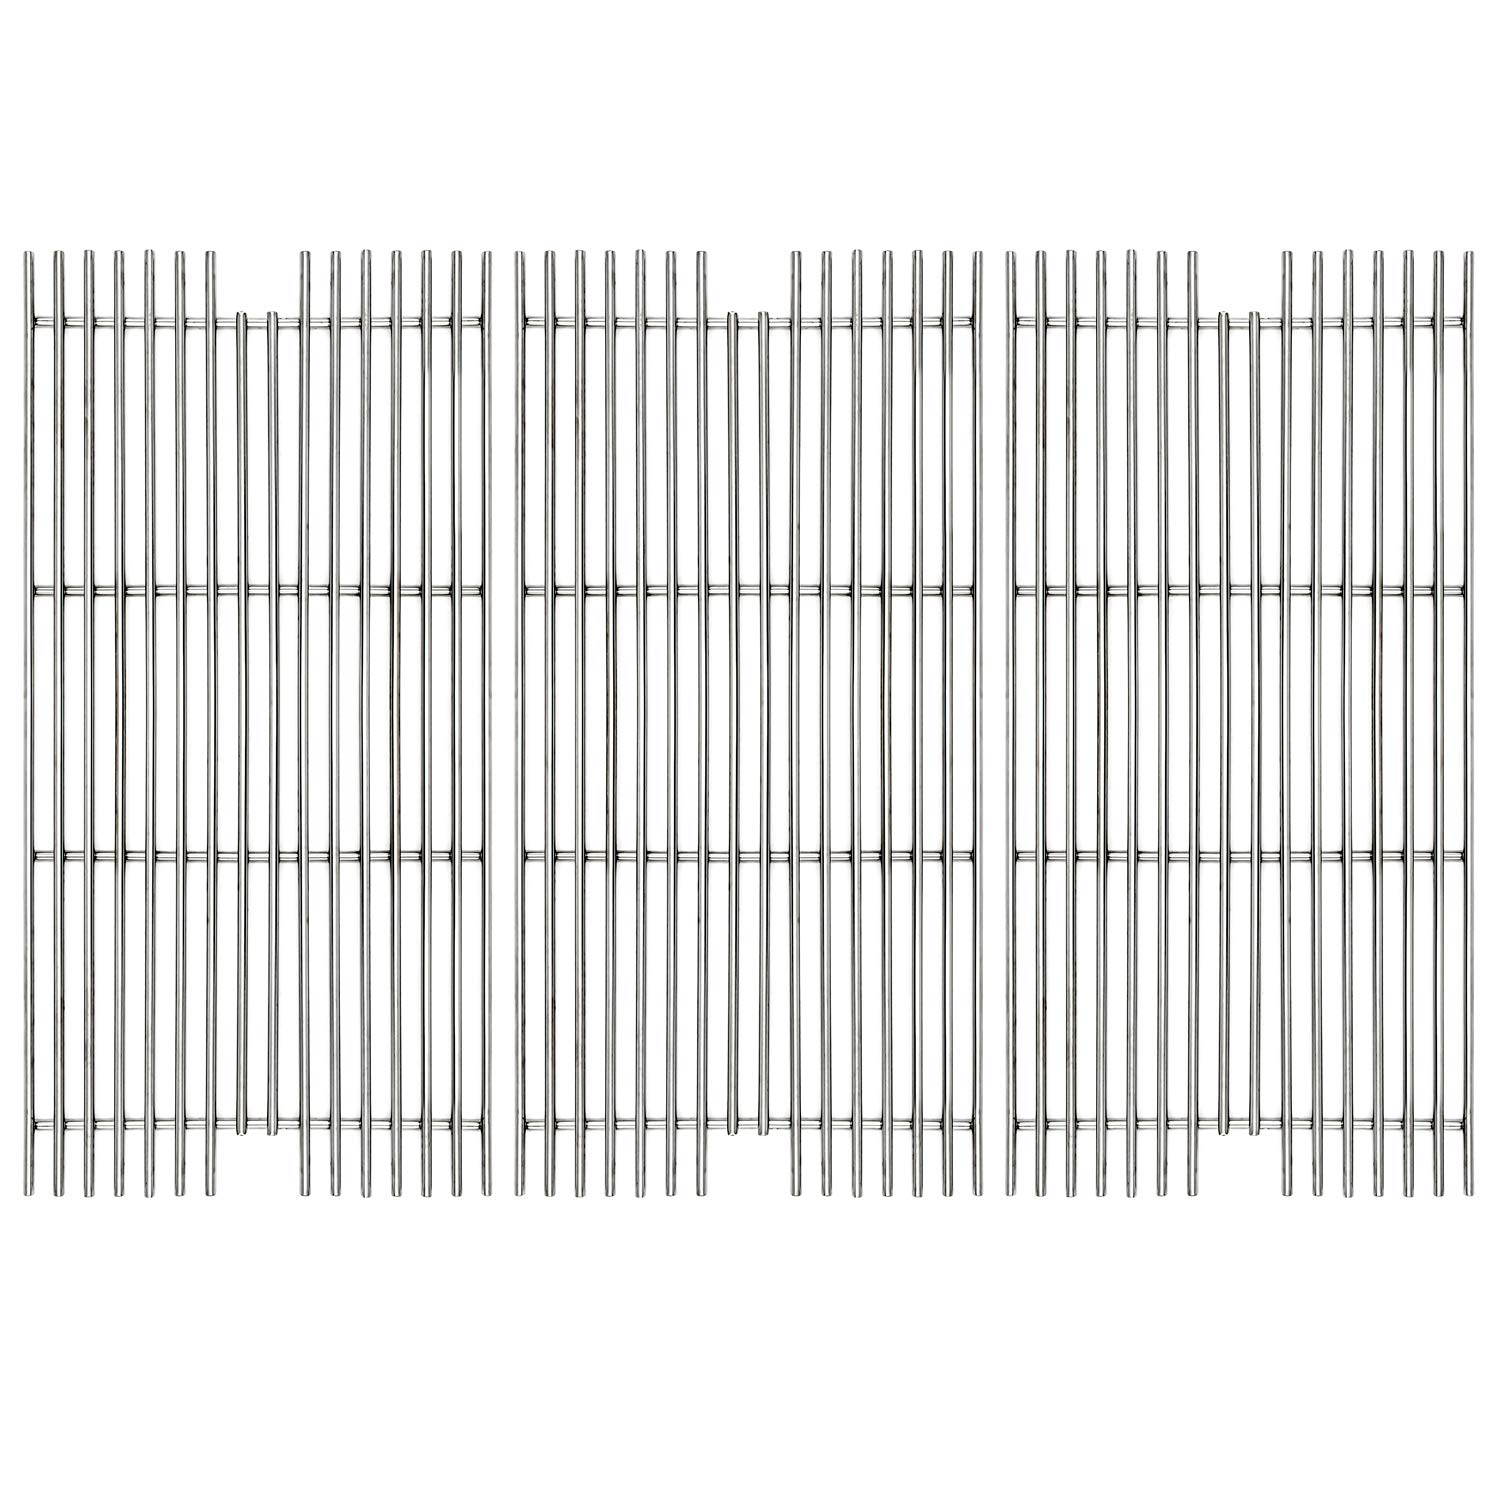 Hongso 304 Stainless Steel Gas Grill Grid Grates Replacement Part for Viking VGBQ 30 in T Series, VGBQ 41 in T Series, VGBQ 53 in T Series Gas Grill, SCD911 3 Pack by Hongso